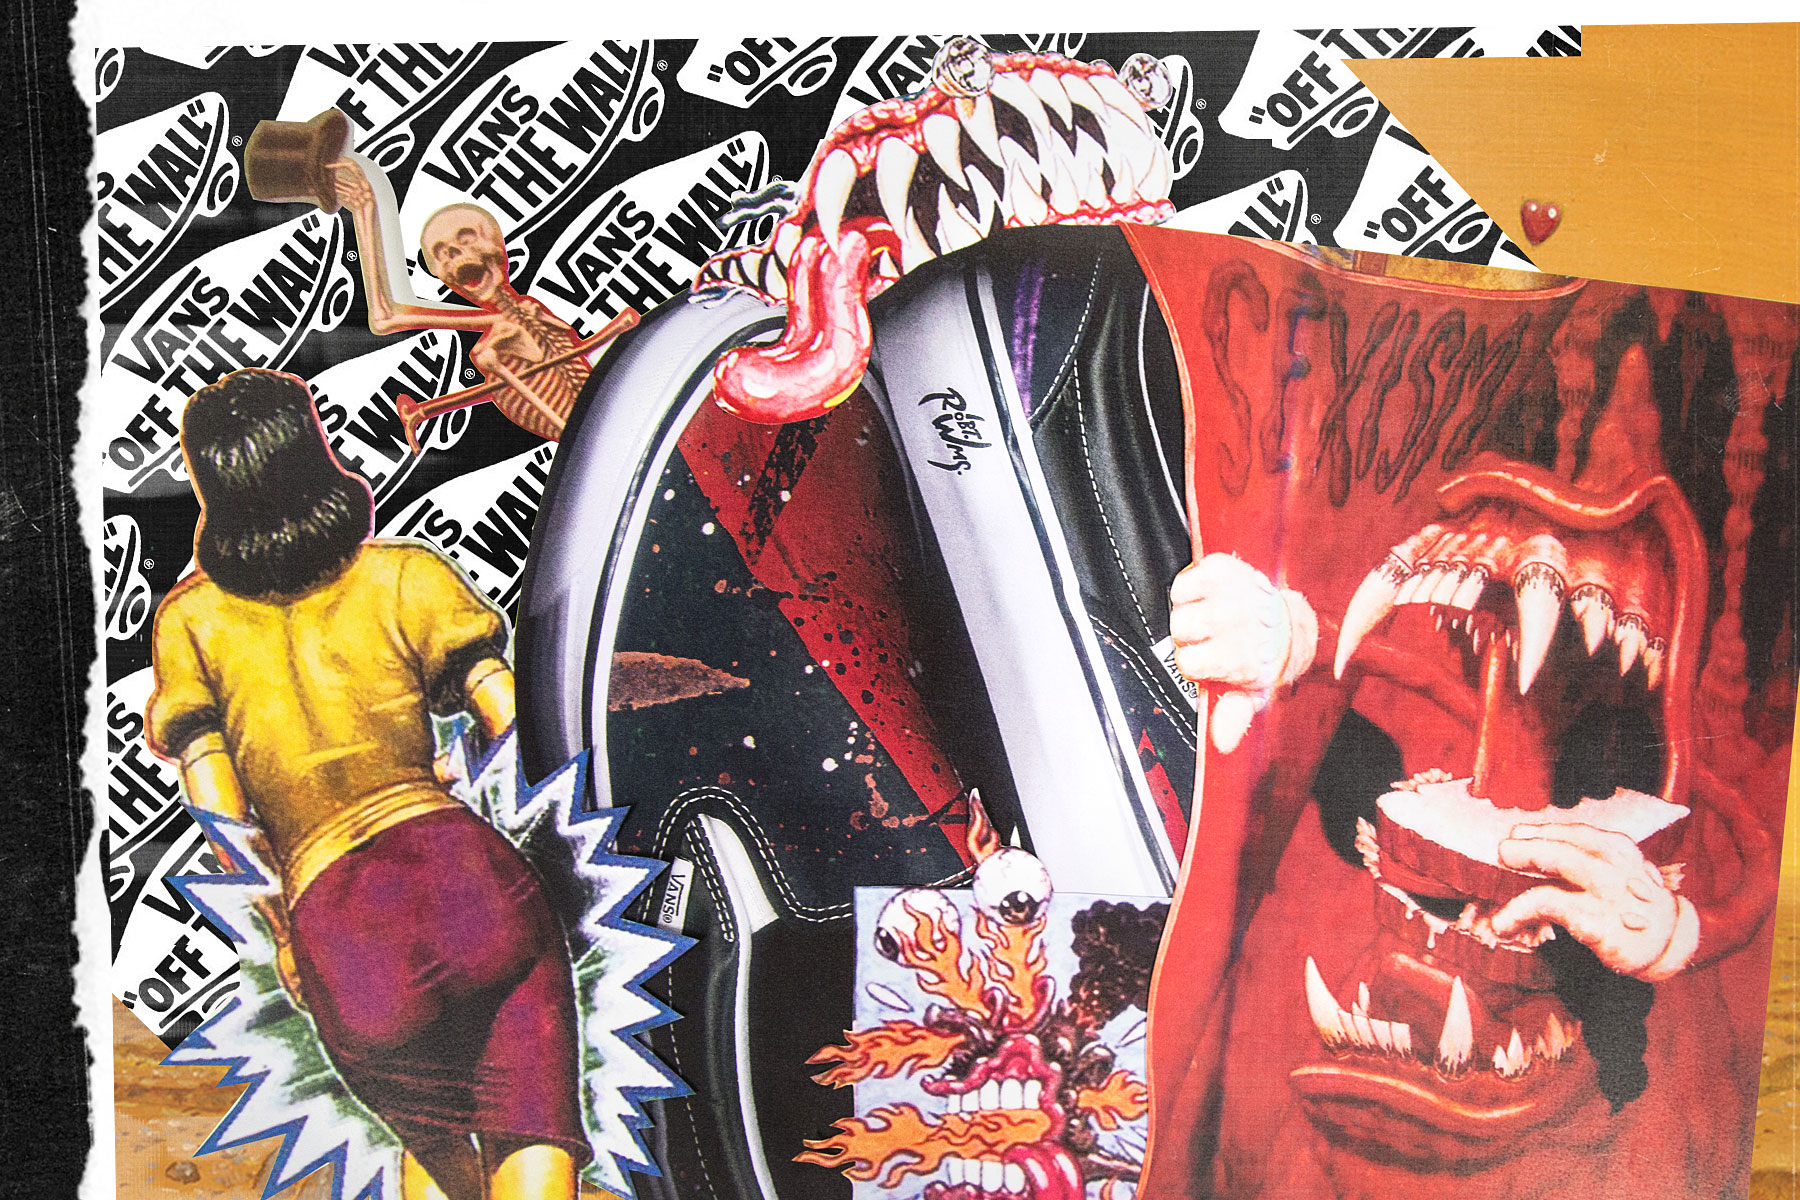 robert williams vault by vans collection and